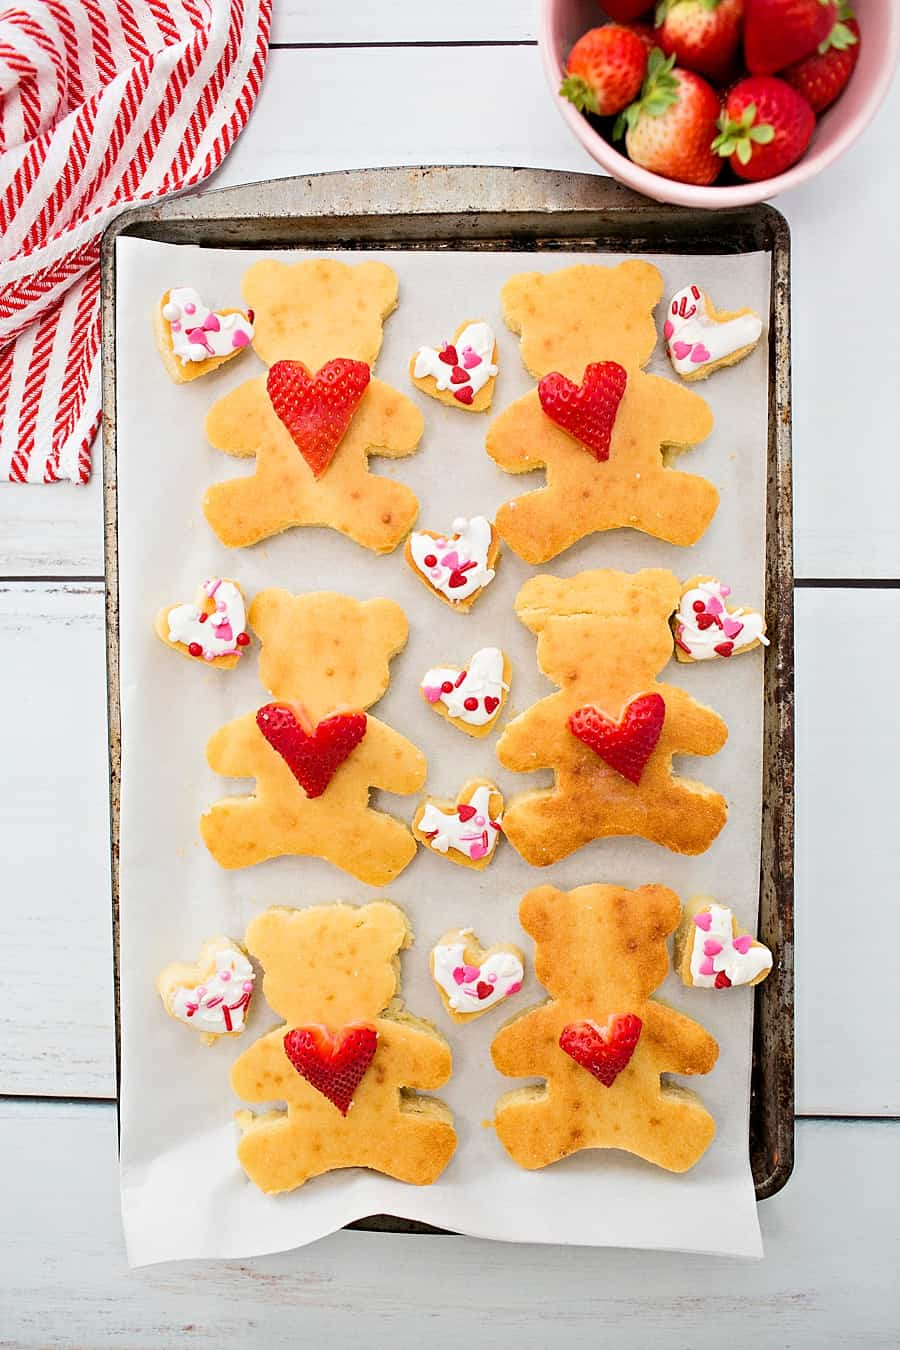 Make these yummy sheet pan bear heart pancakes for Valentine's Day breakfast to surprise the kids with a sweet treat